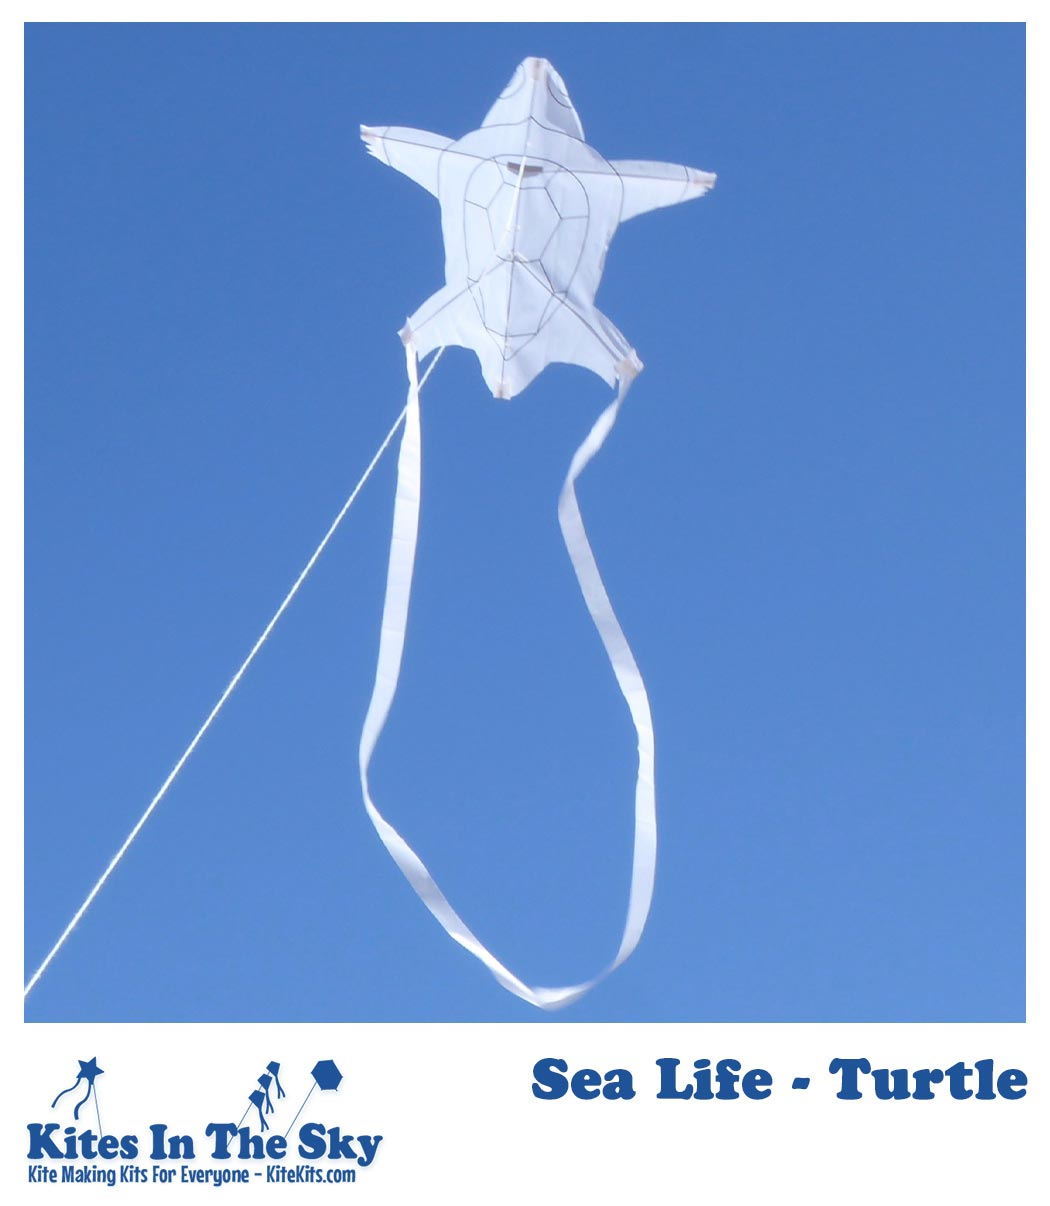 Sea Life - Turtle Kite (1-4 pk) - Kites In The Sky